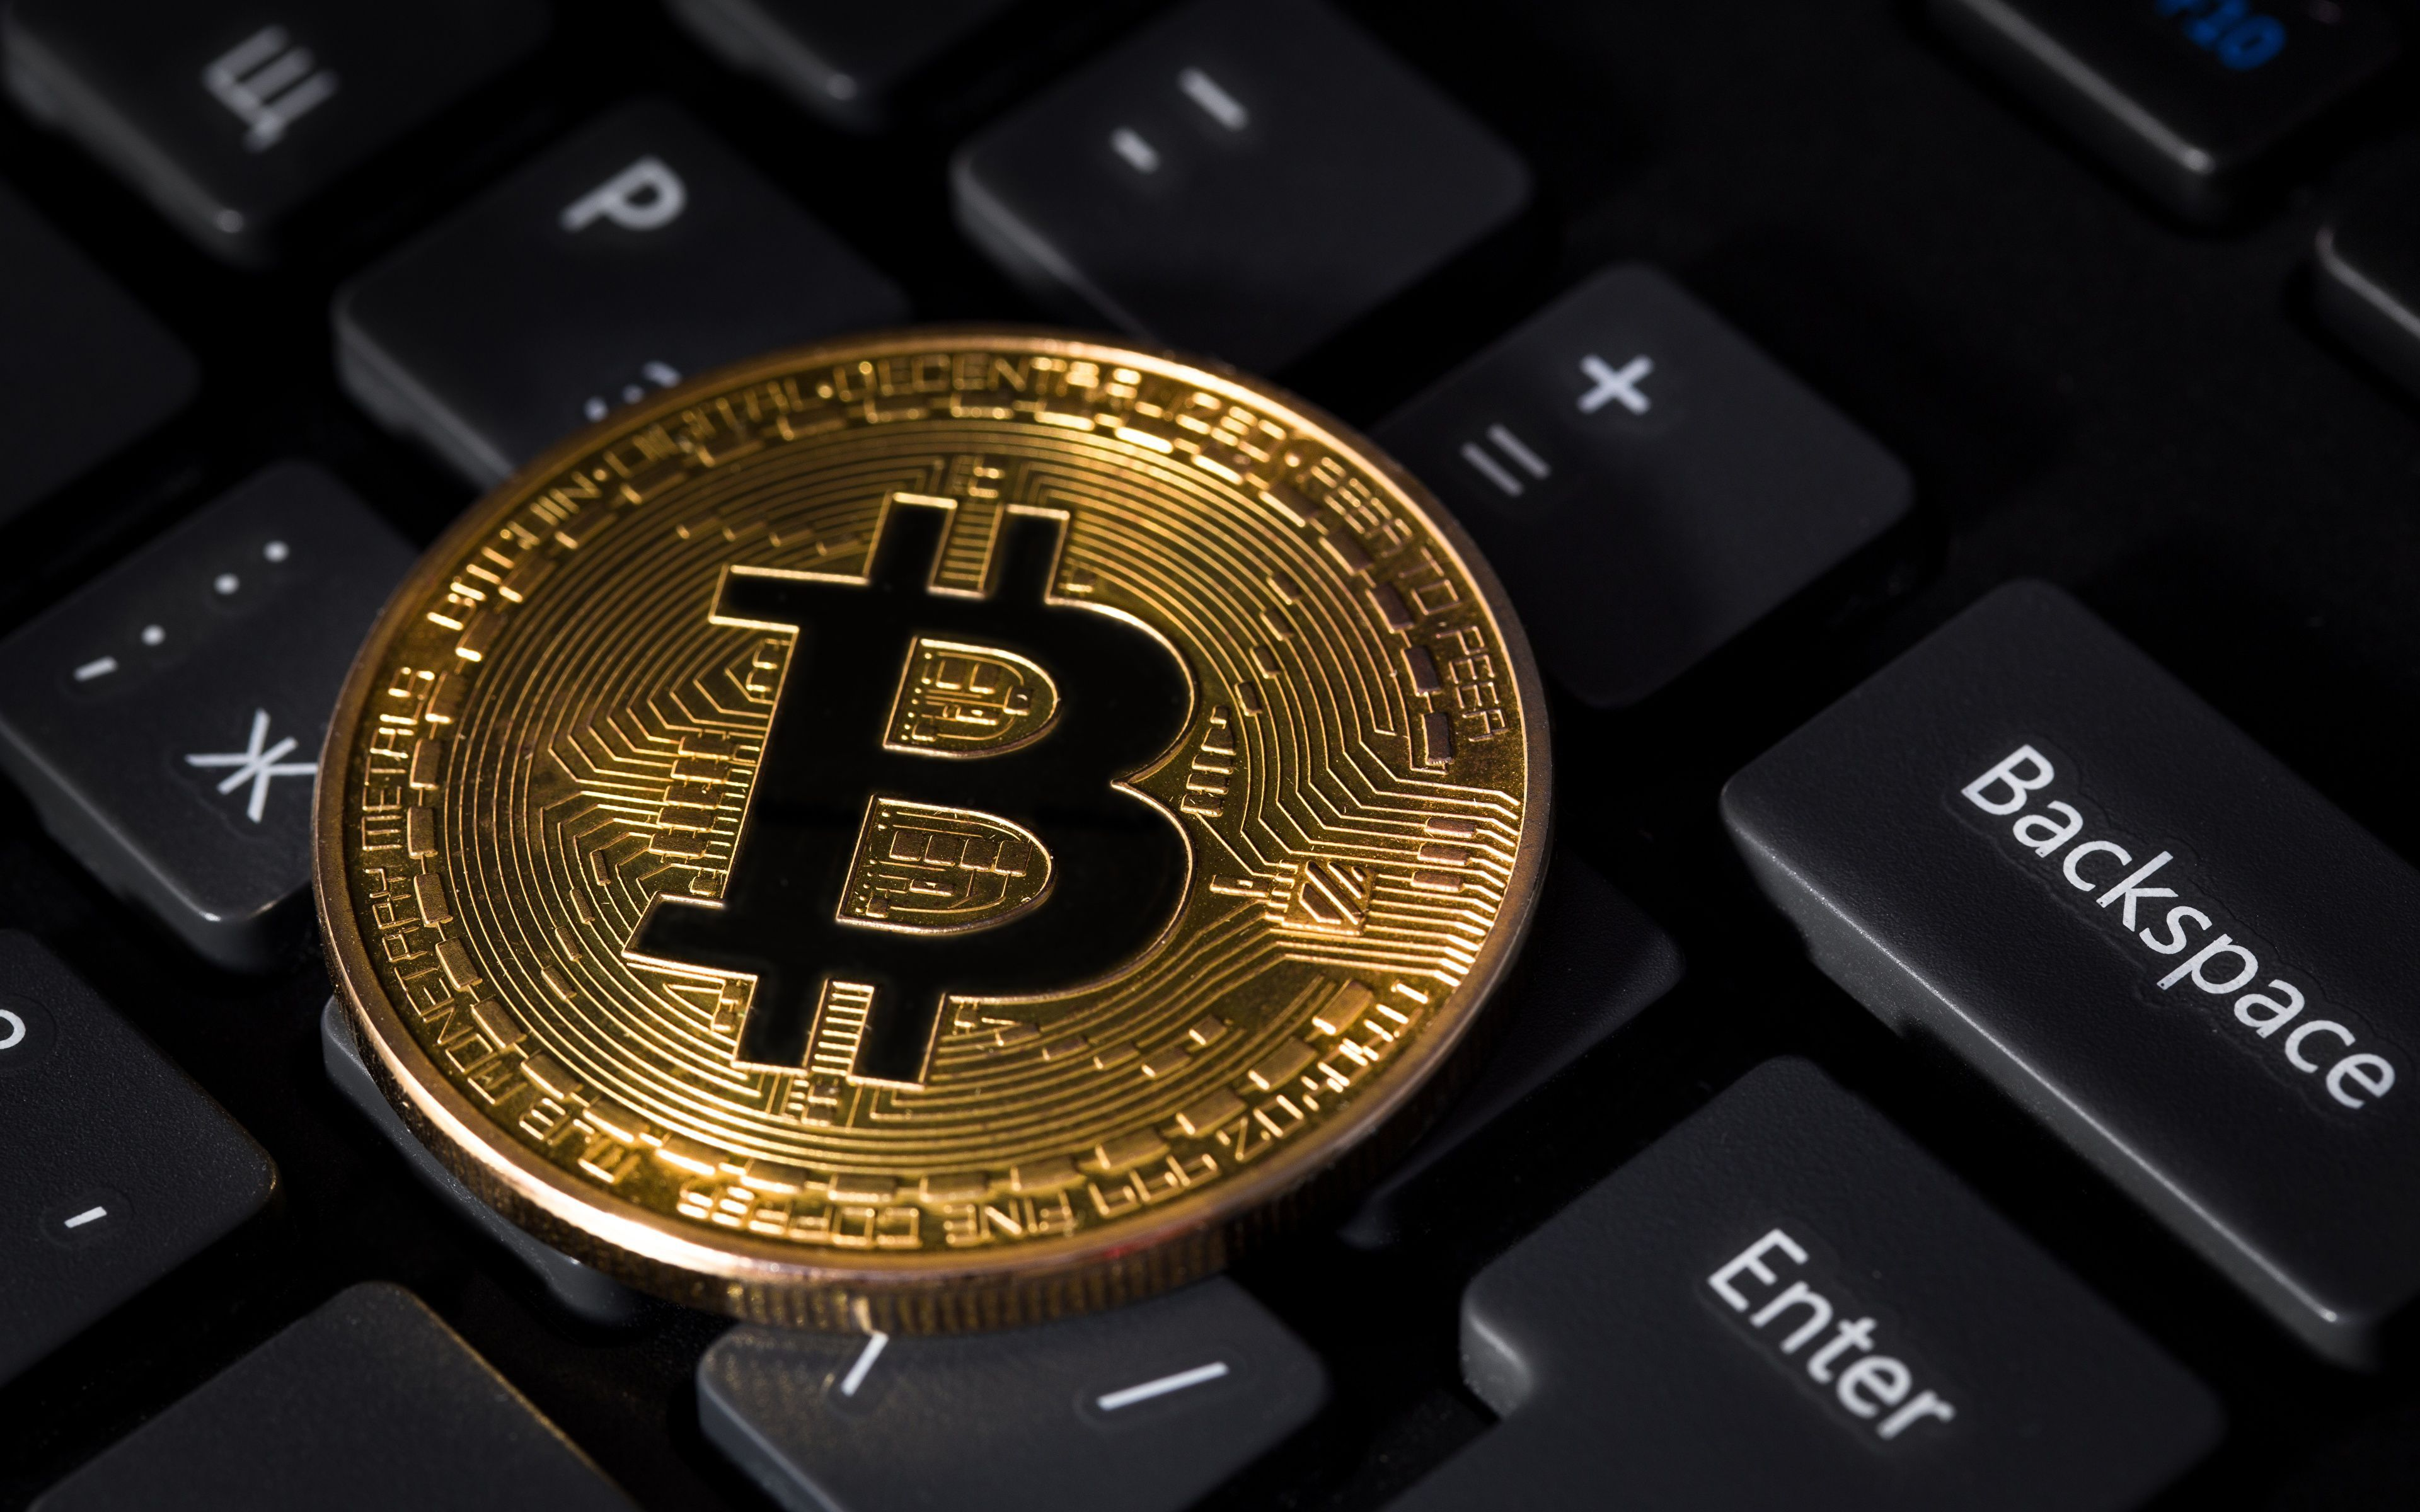 Bitcoin wallpapers and photos 4k full hd with images